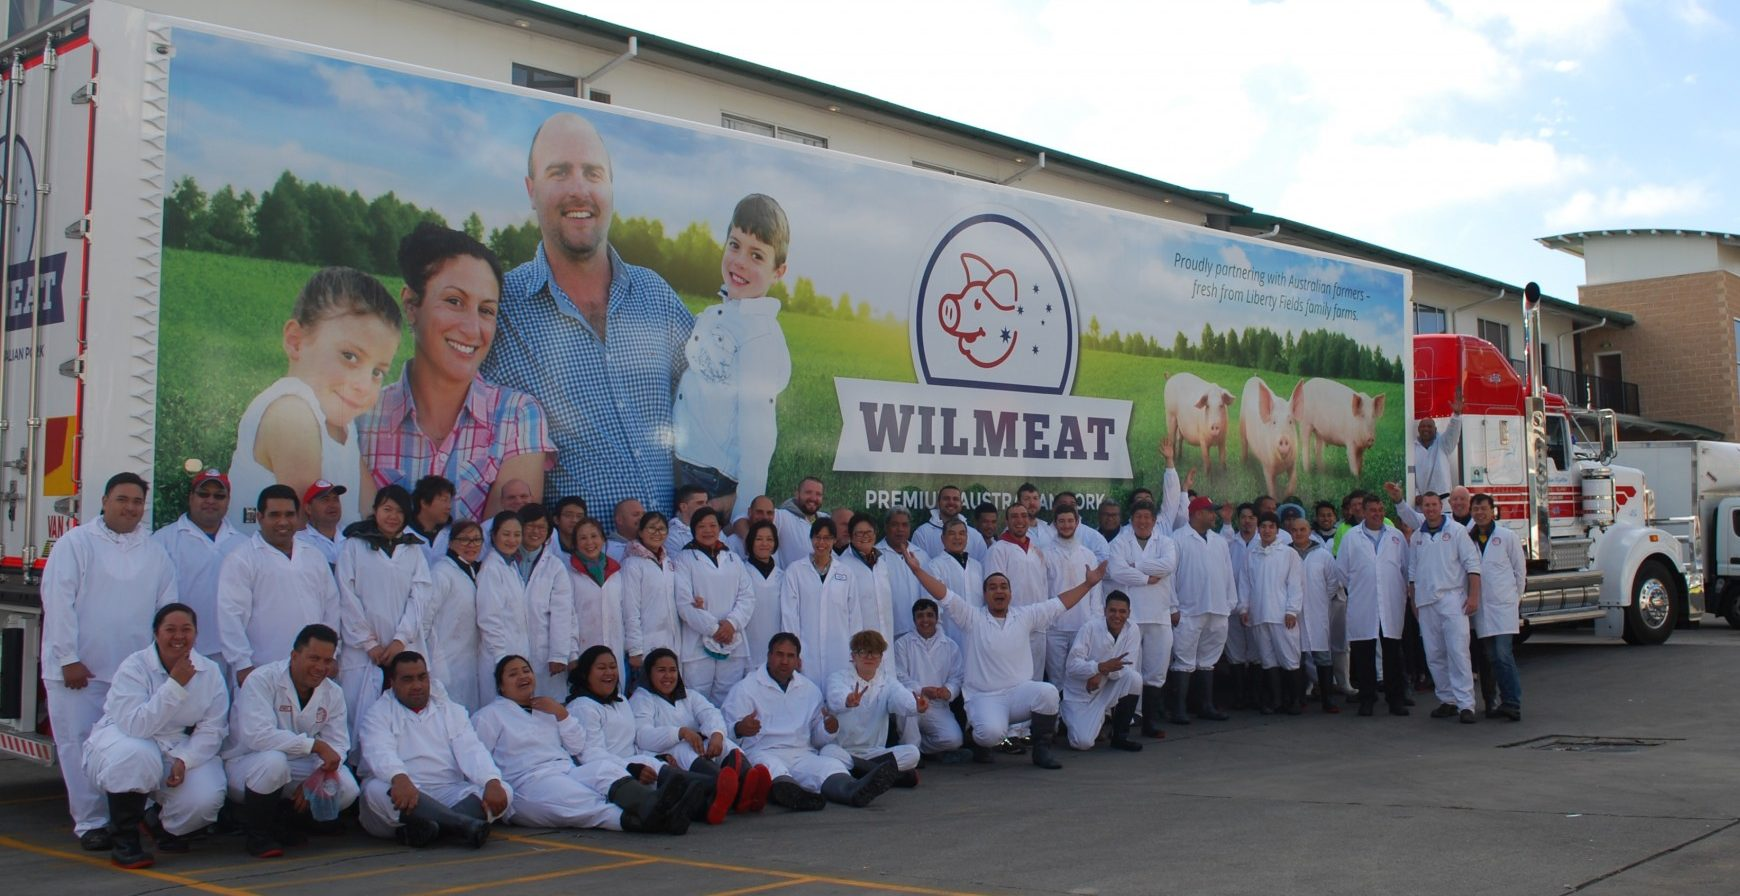 Wilmeat refrigerated truck with staff in front